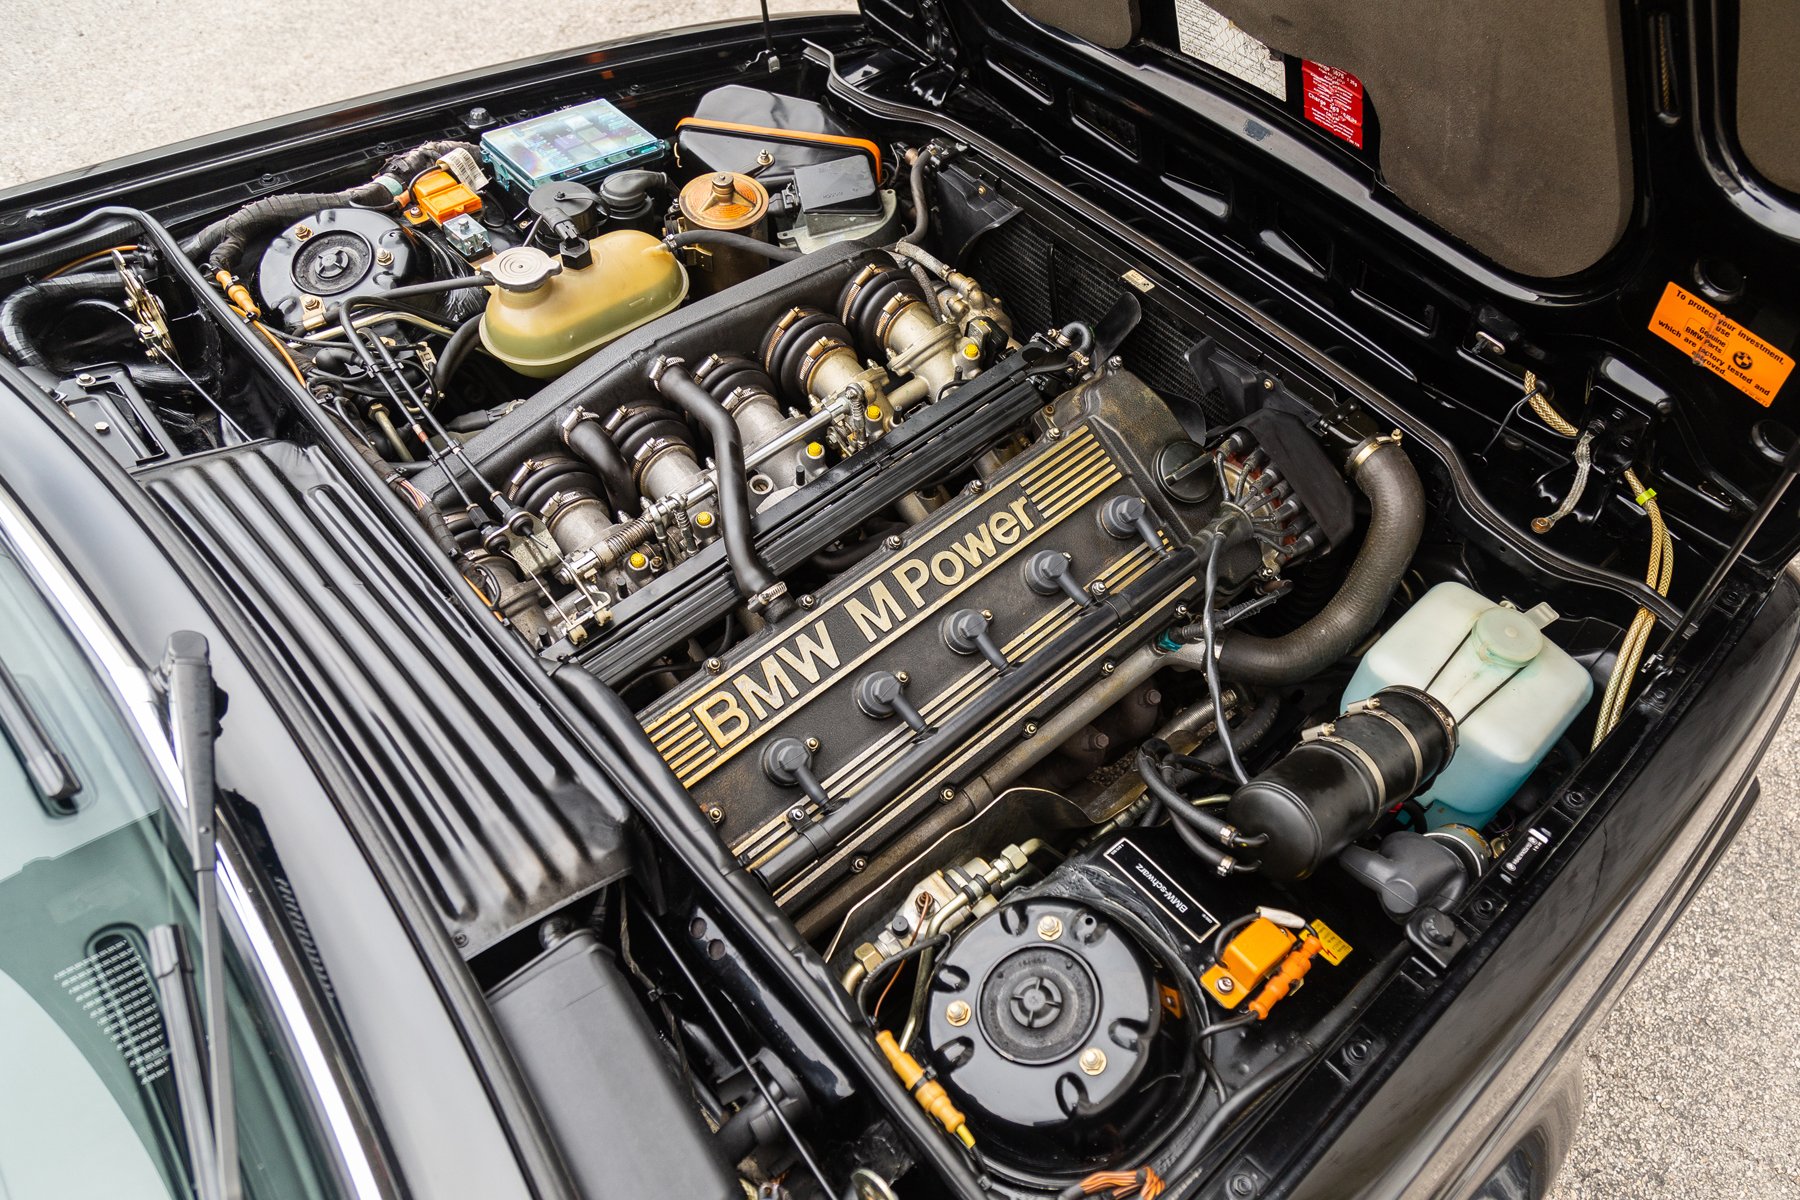 The longitudinally mounted front engine is a road-legal evolution of the one originally mounted on the M1 and is equipped with a catalyst